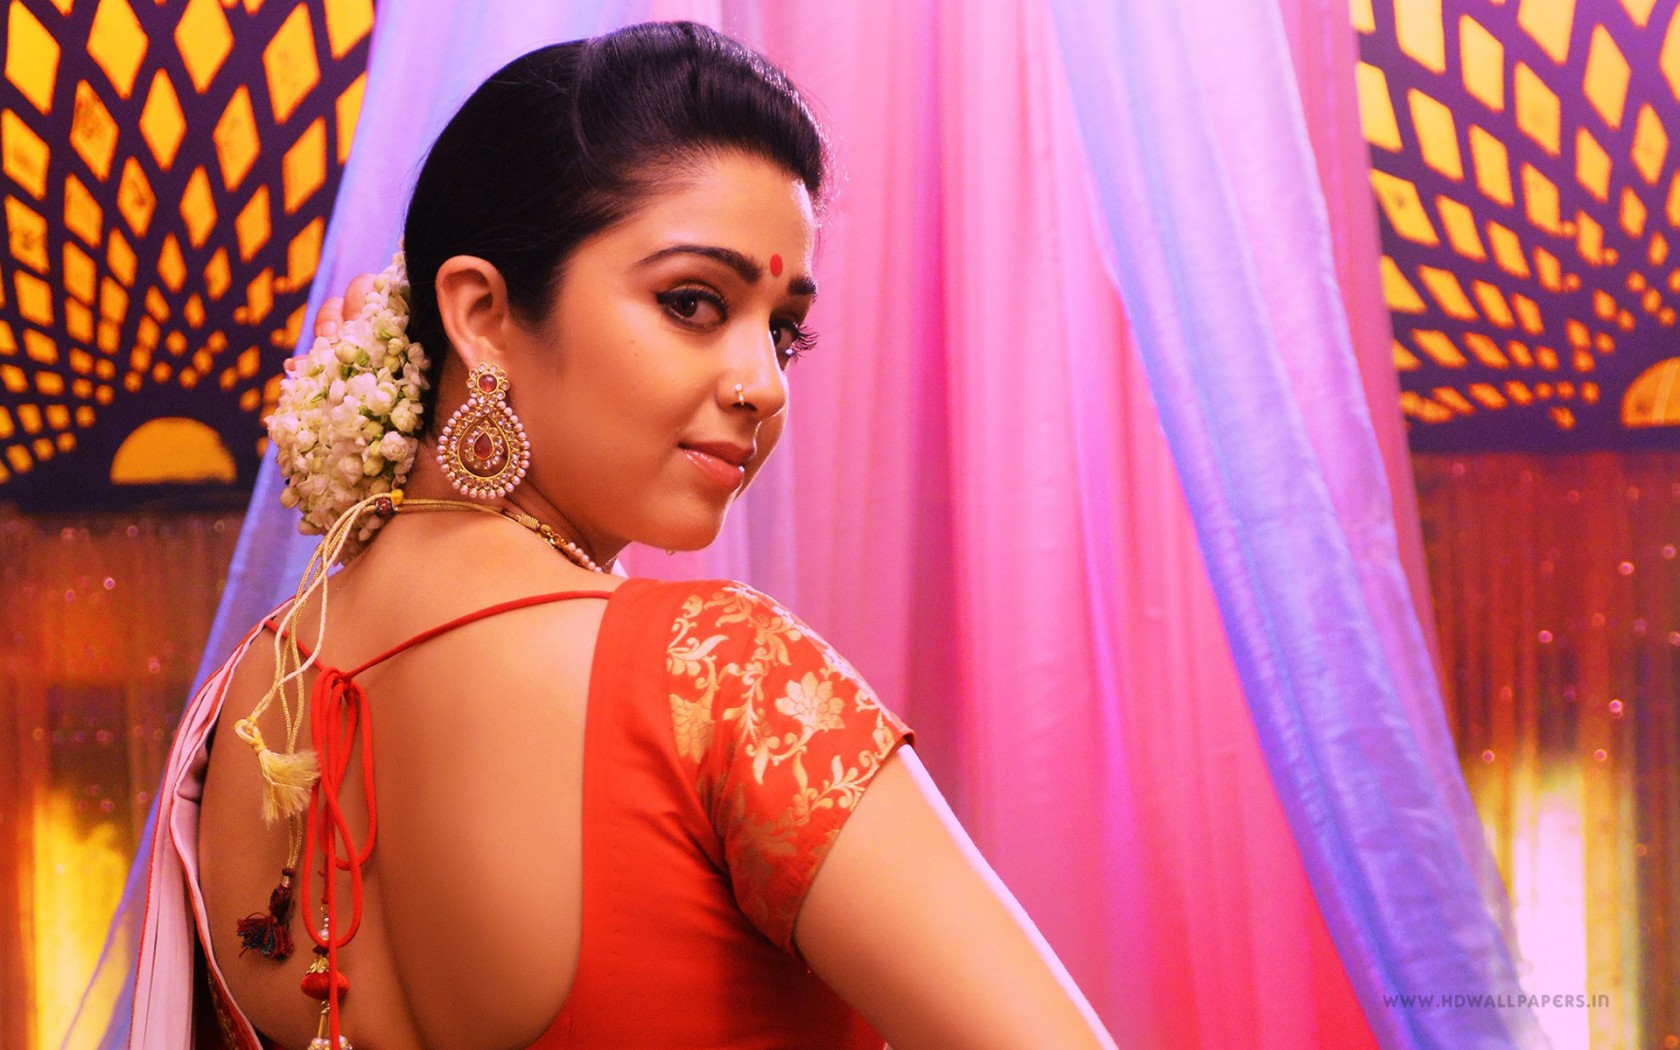 Jyothi 3d Wallpapers Charmi In Jyothi Lakshmi Wallpapers Hd Wallpapers Id